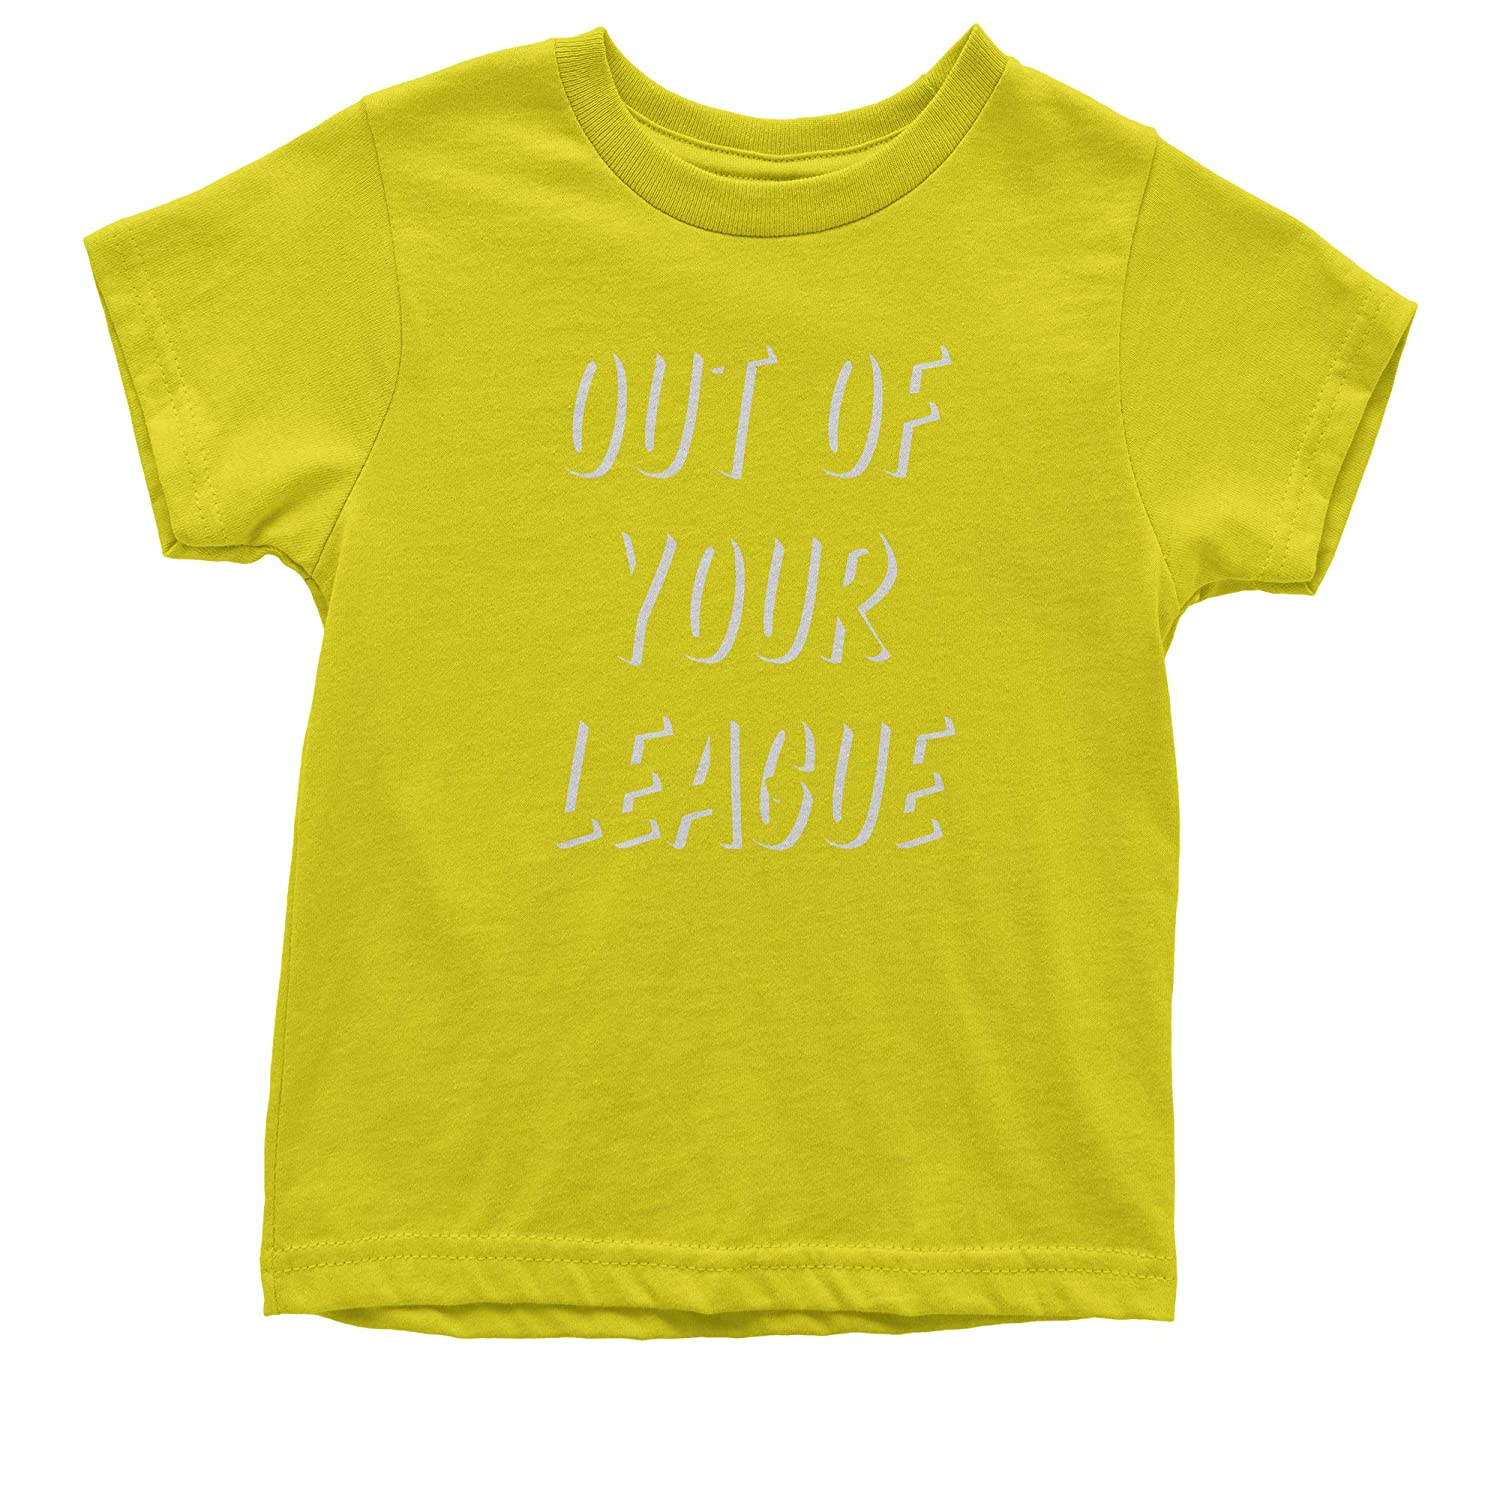 Expression Tees Out of Your League Youth T-Shirt